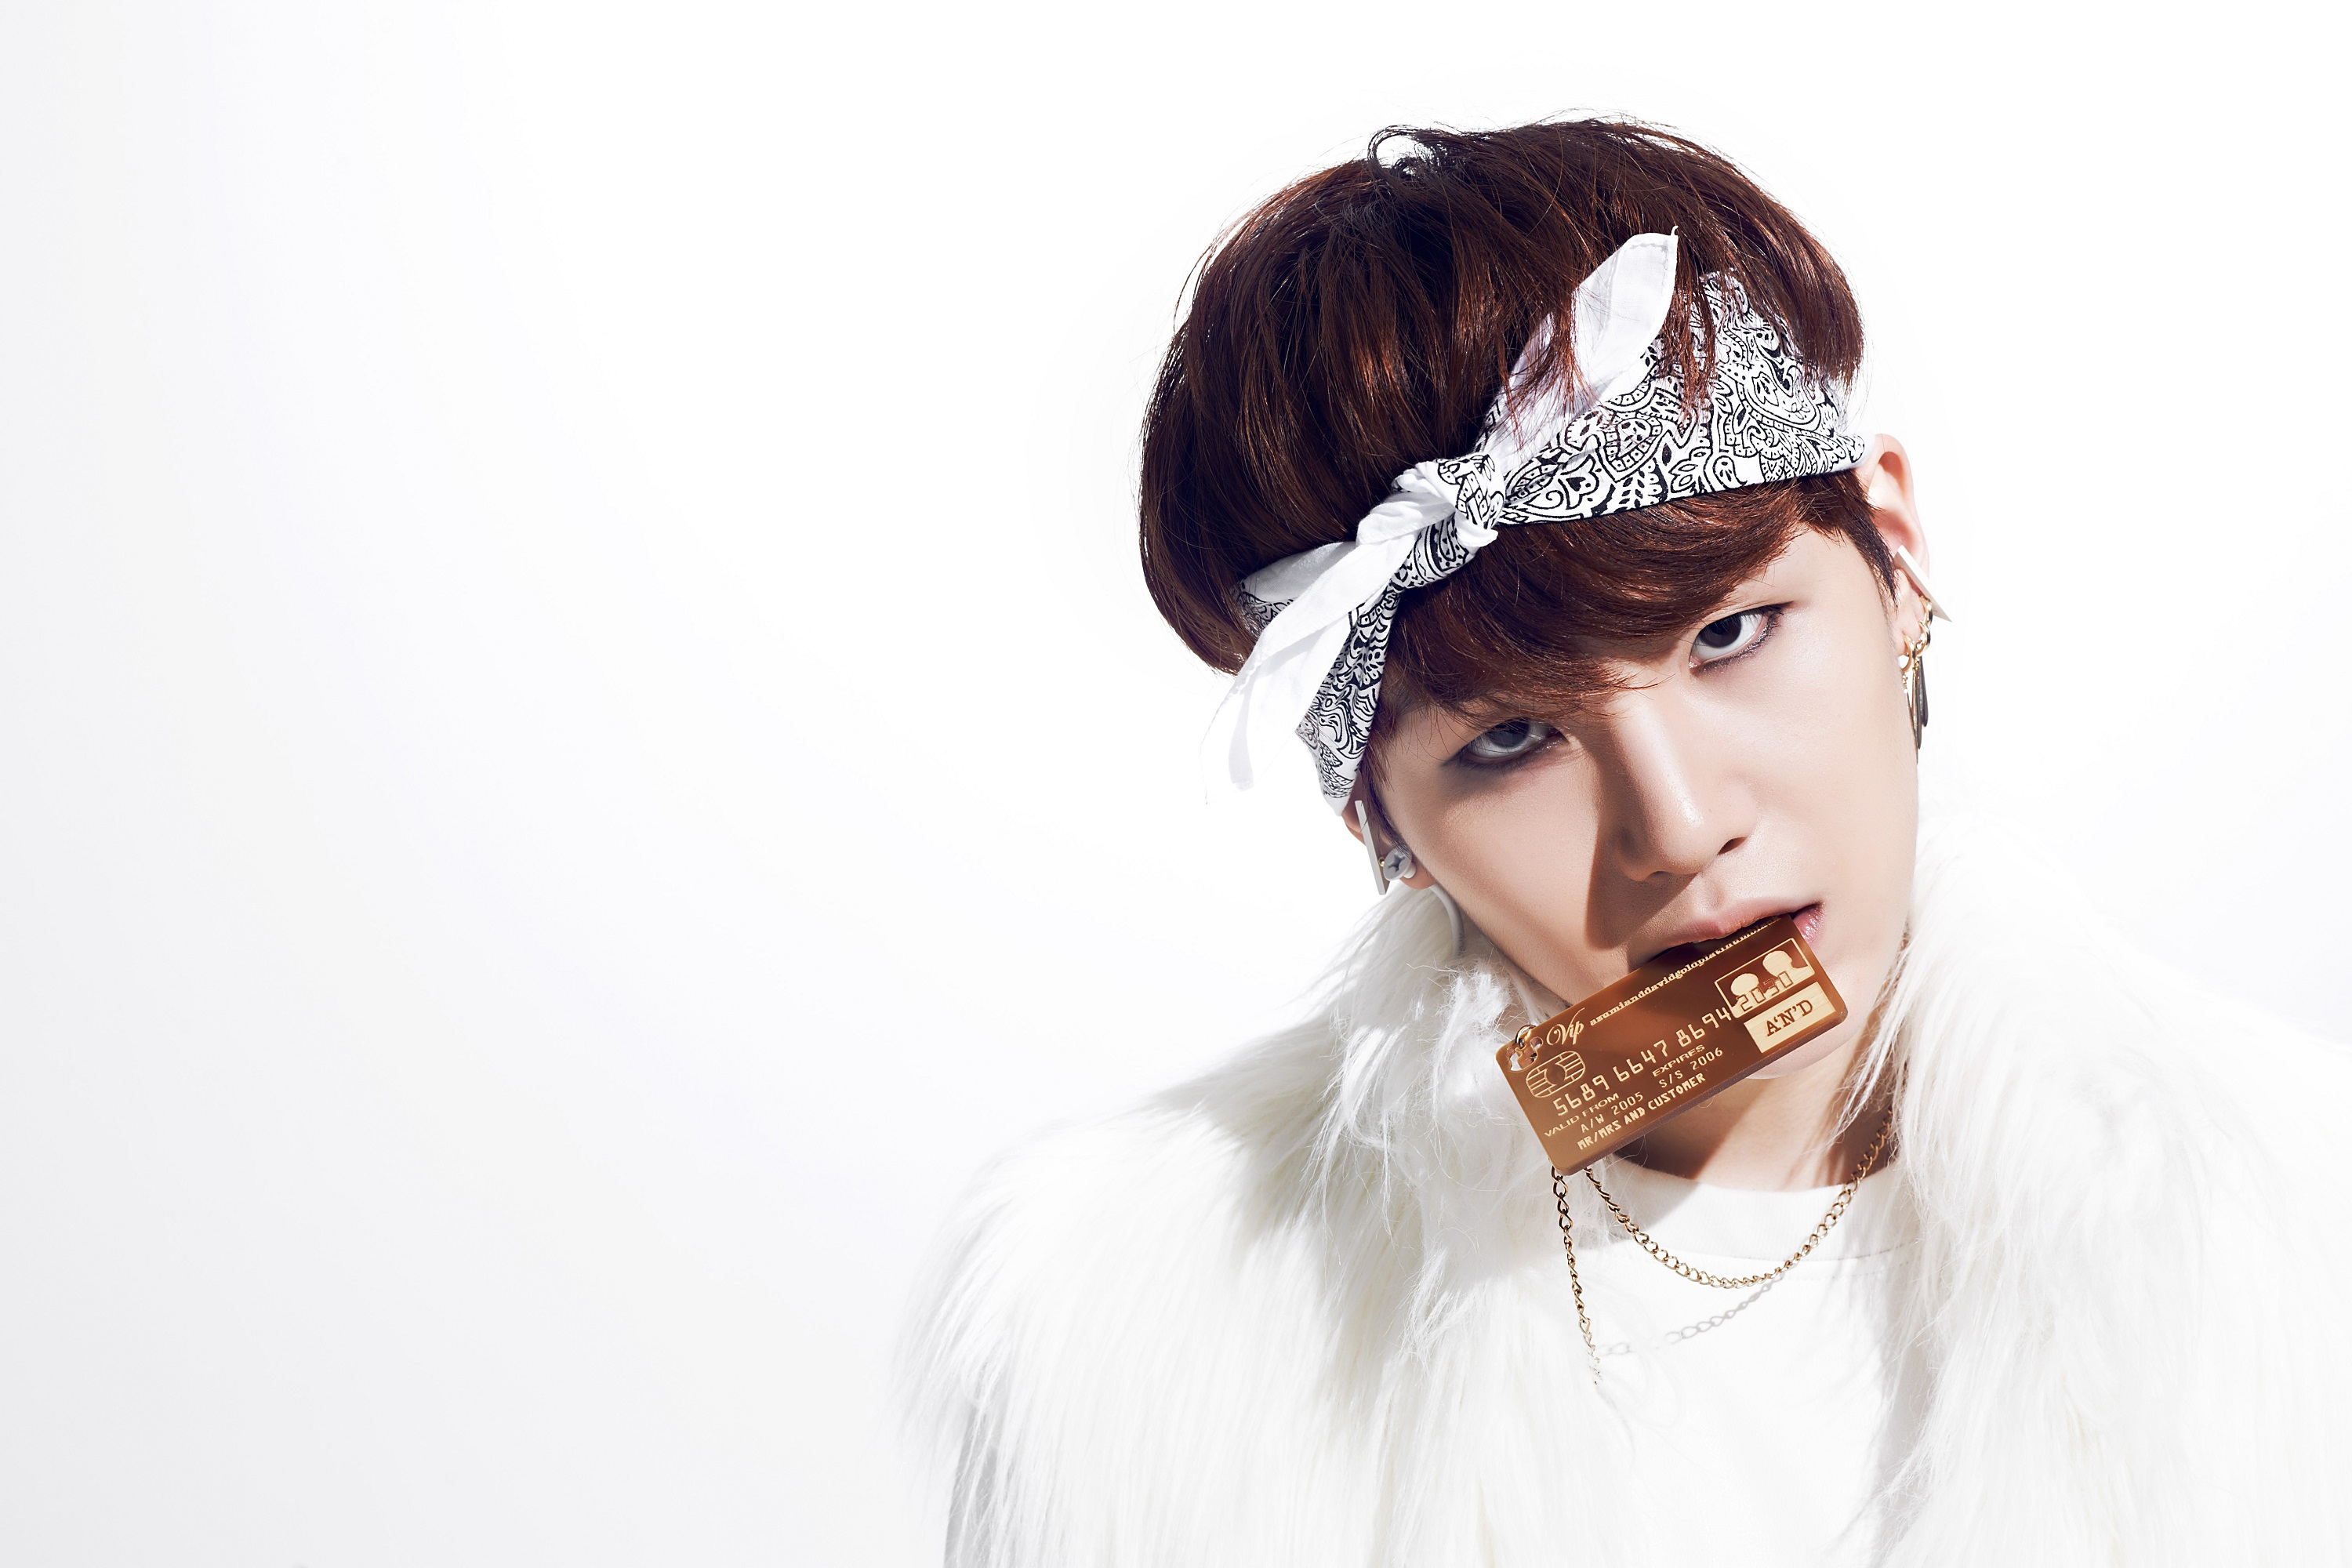 Min Yoongi Suga Suga Bts Photo 36792302 Fanpop